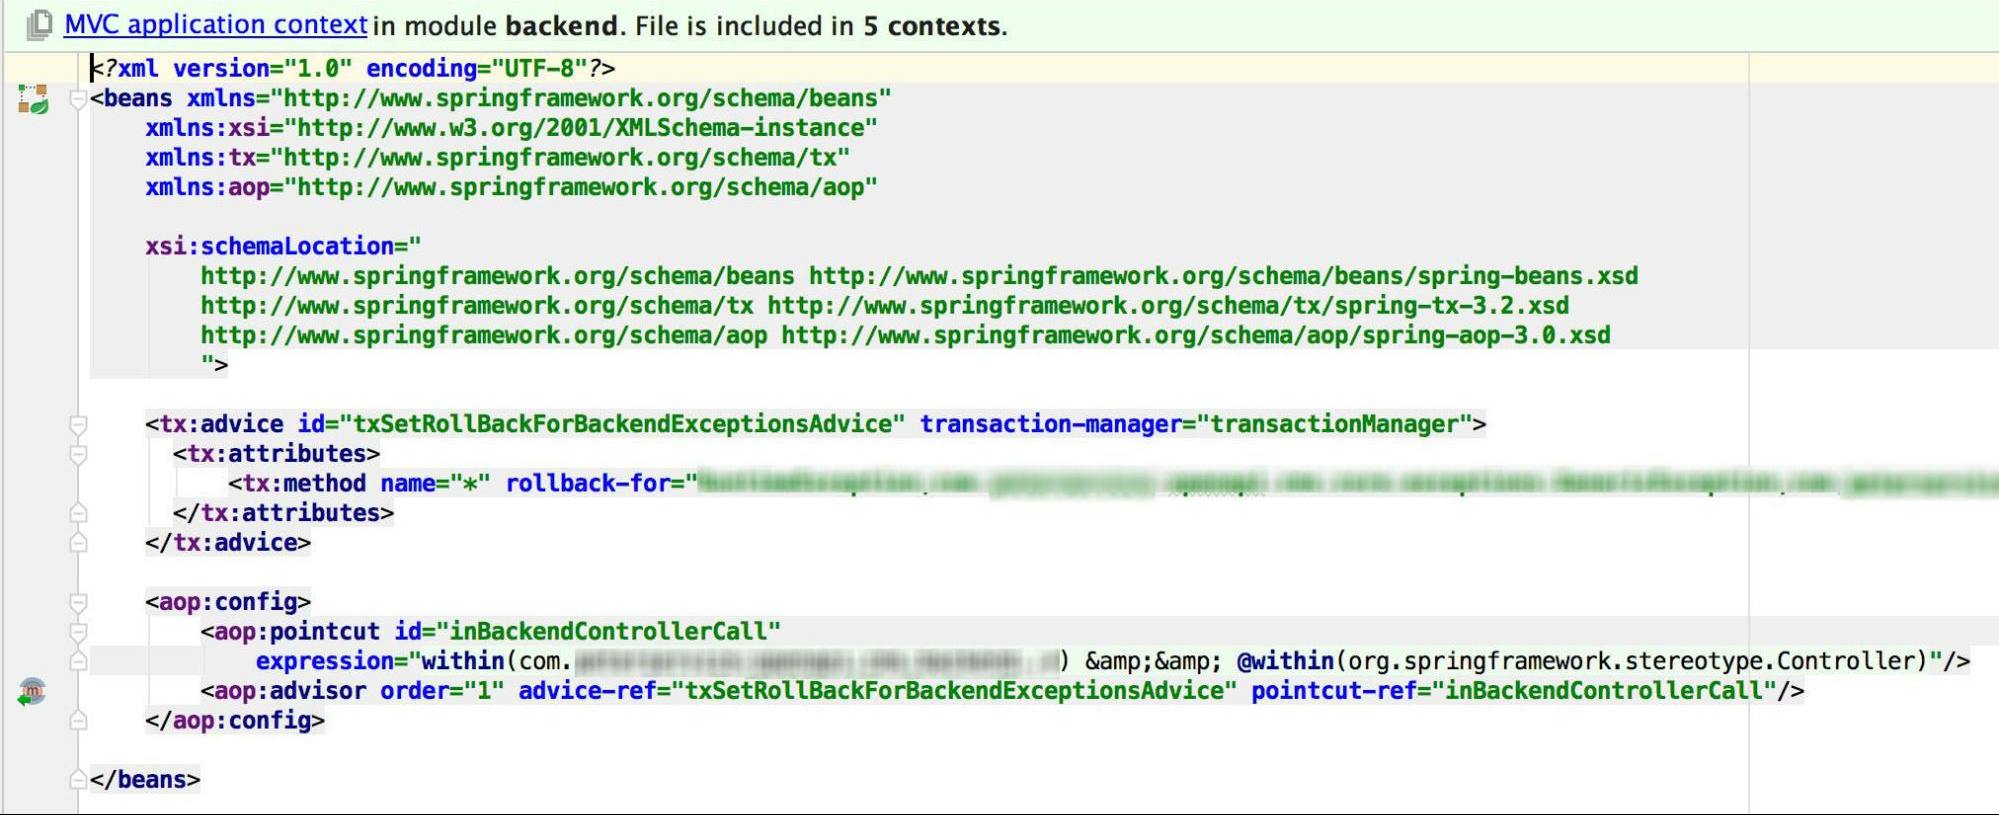 Transaction manager. The configuration file for managing transactions.